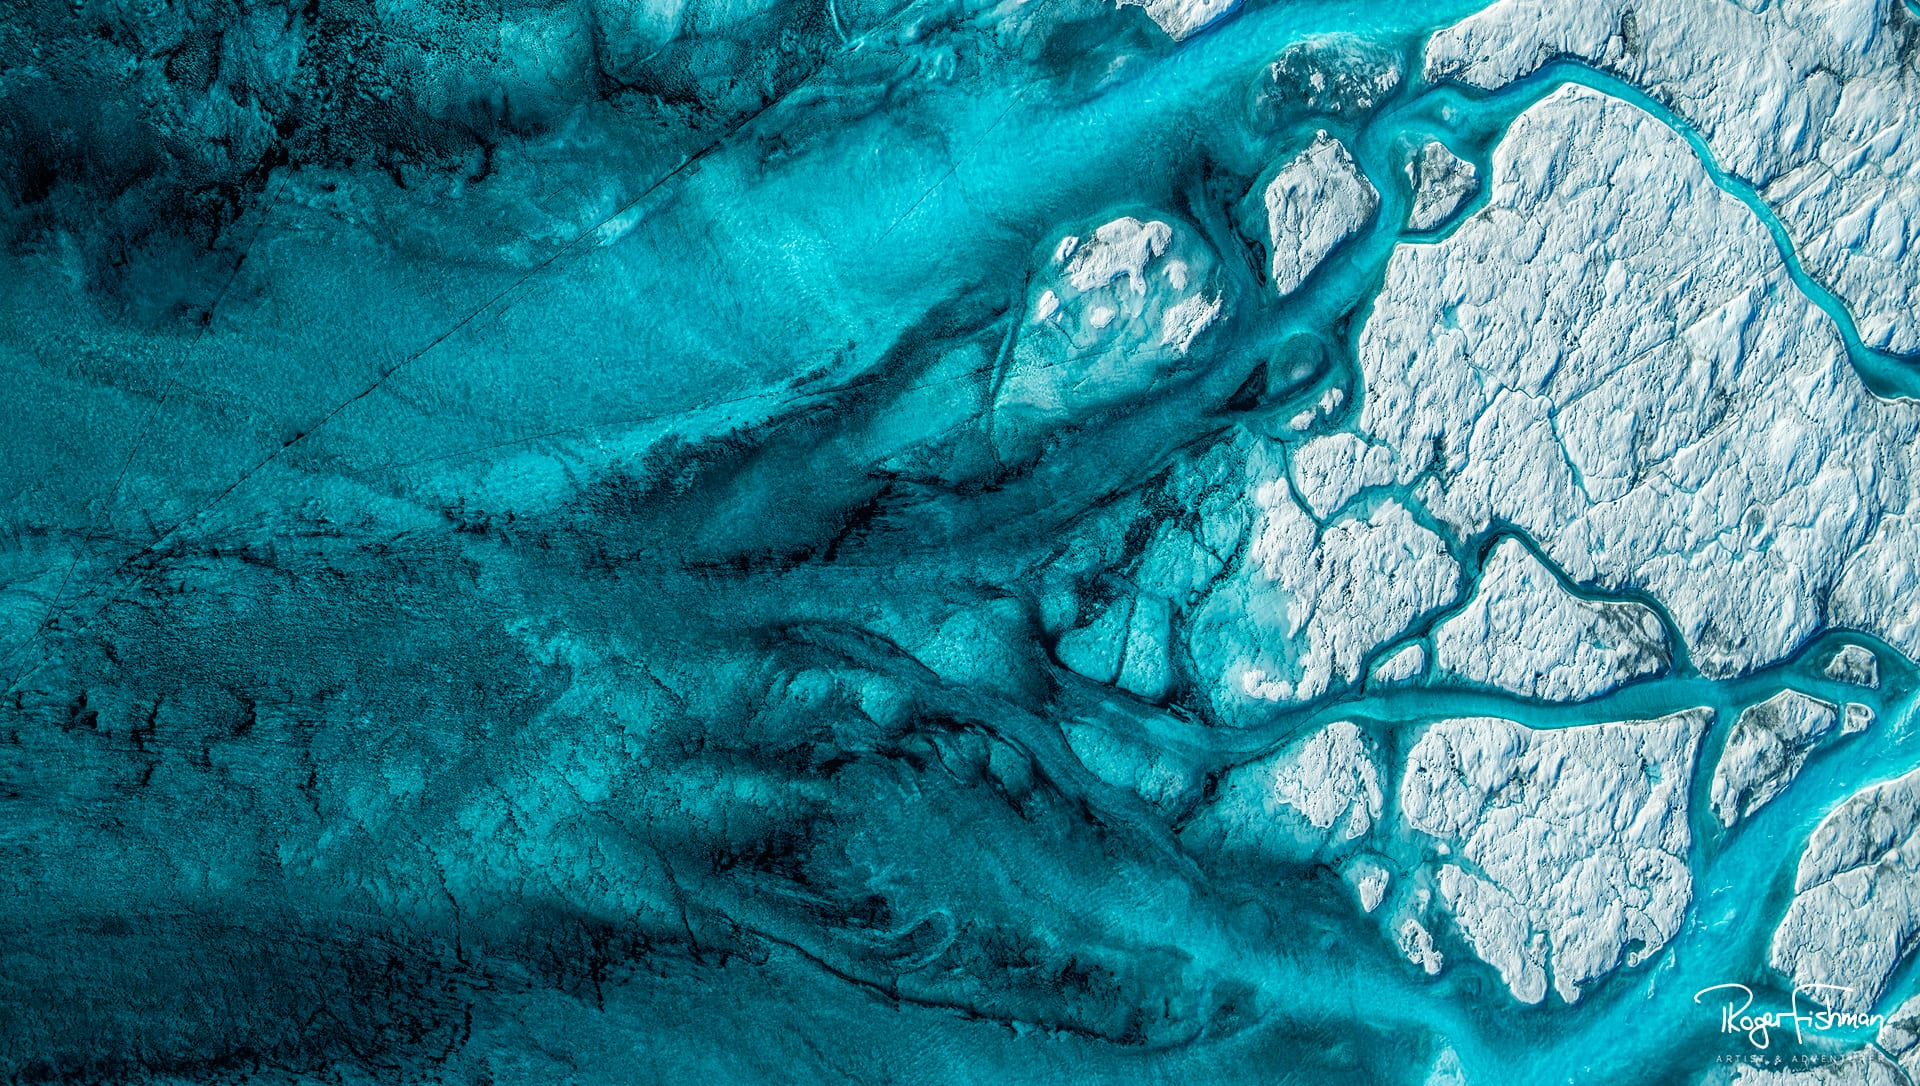 """Titled """"Aqua & Black #2,"""" this bird's eye view shows the vein-like patterns carved from annual meltwater on top of Greenland's glaciers, a once seasonal effect that has been exacerbated by climate change.  (© Roger Fishman)"""